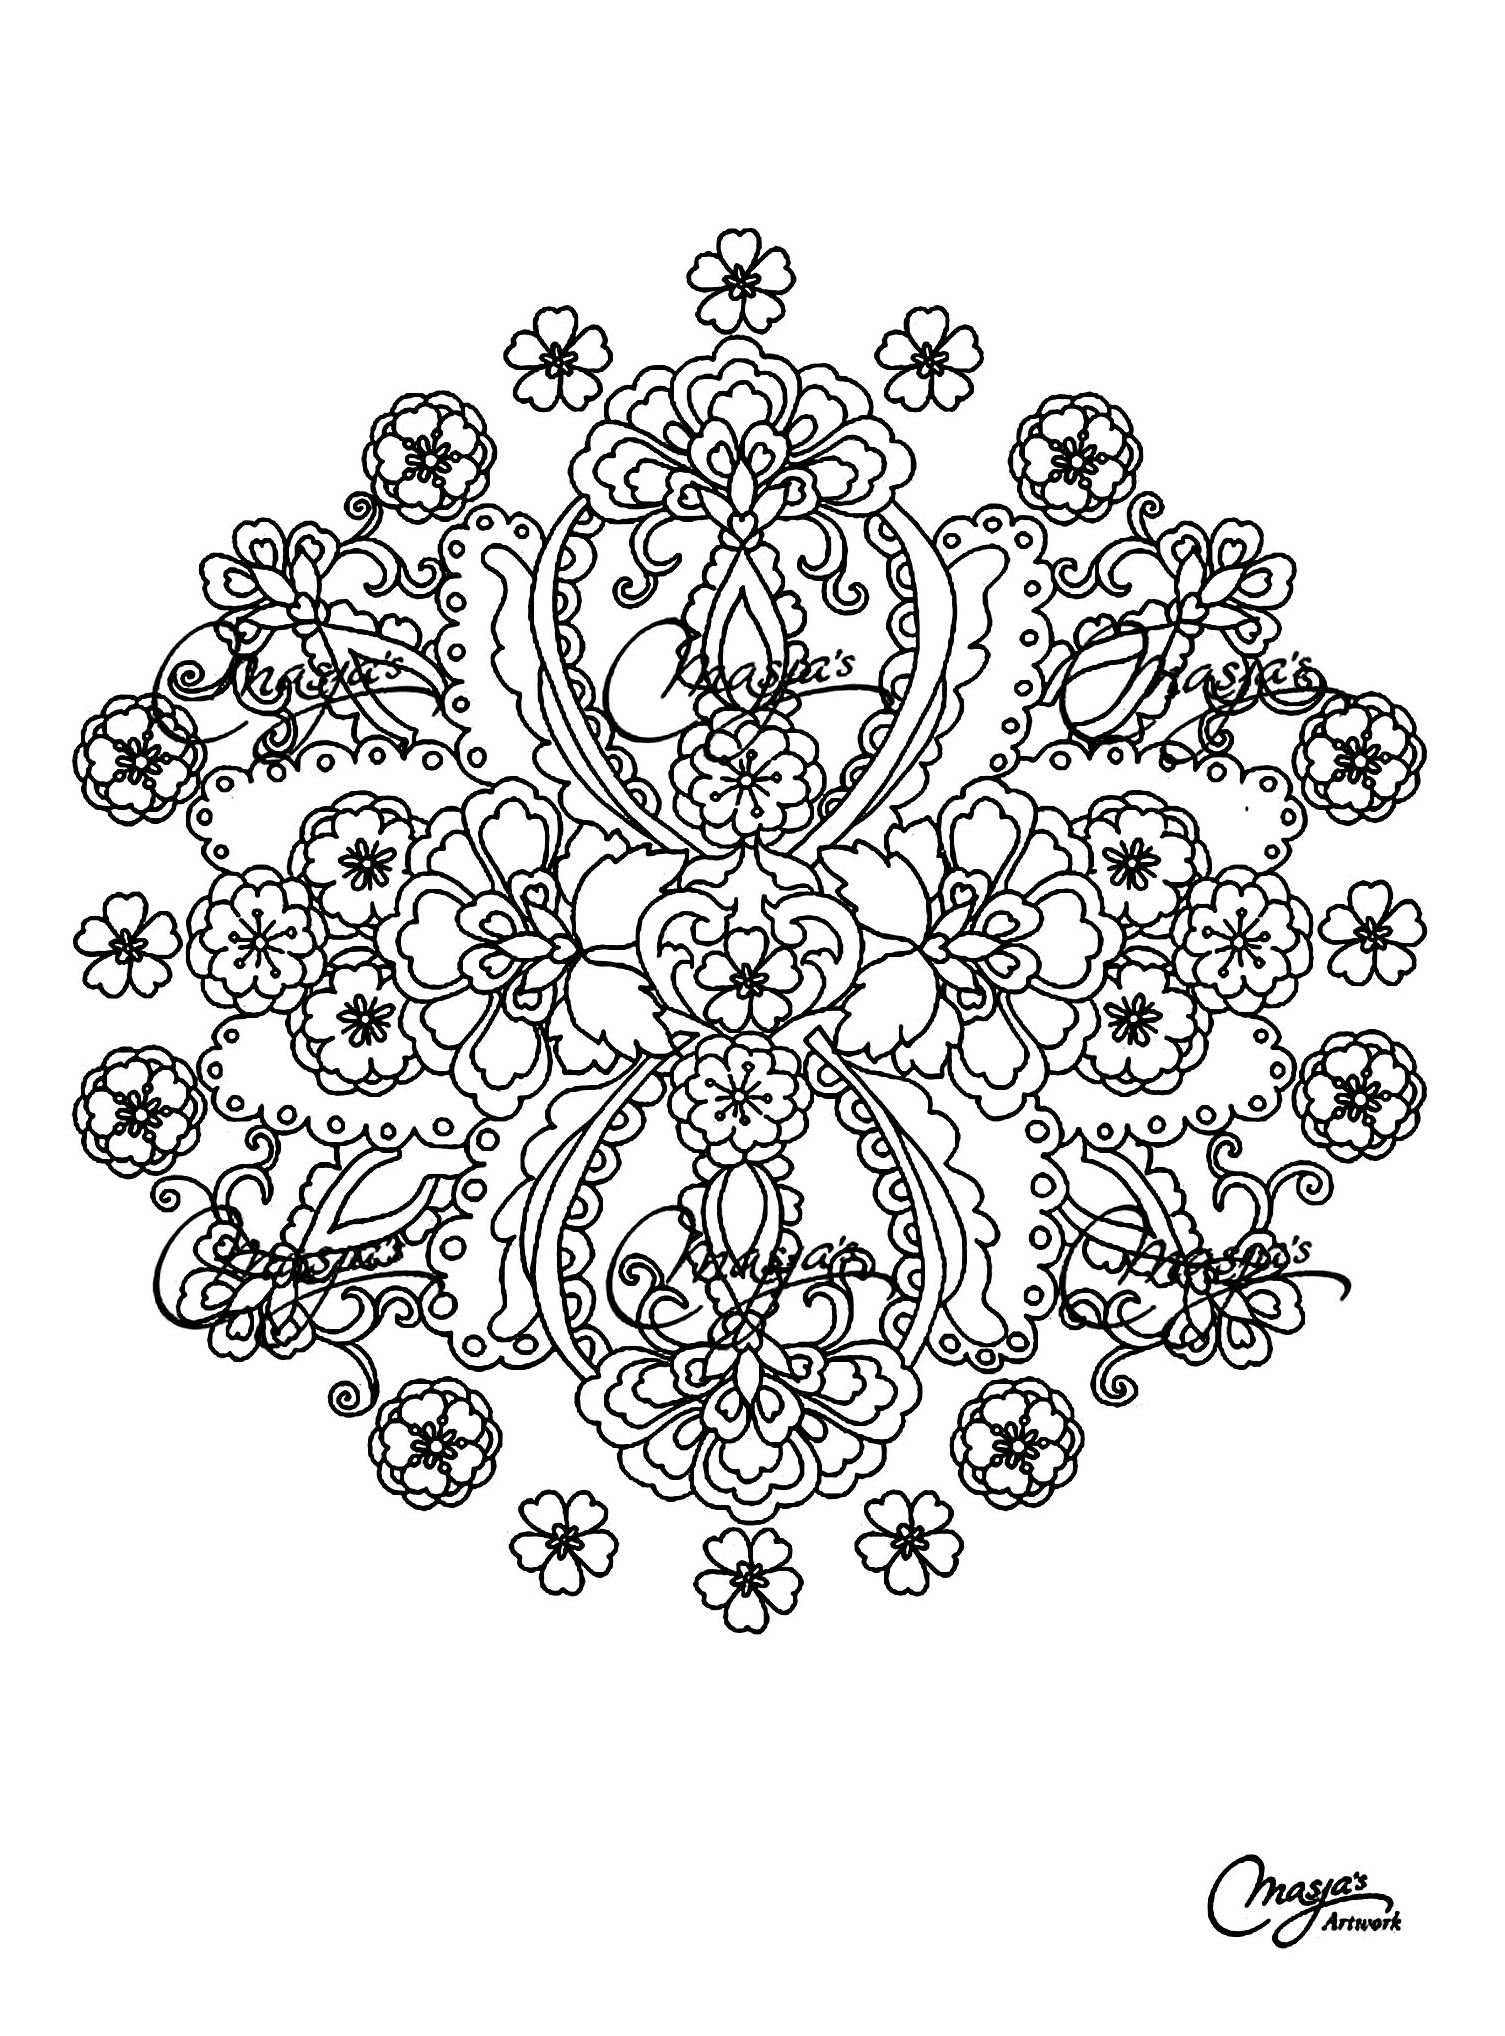 Mandala To Color Difficult 9 Difficult Mandalas For Adults 100